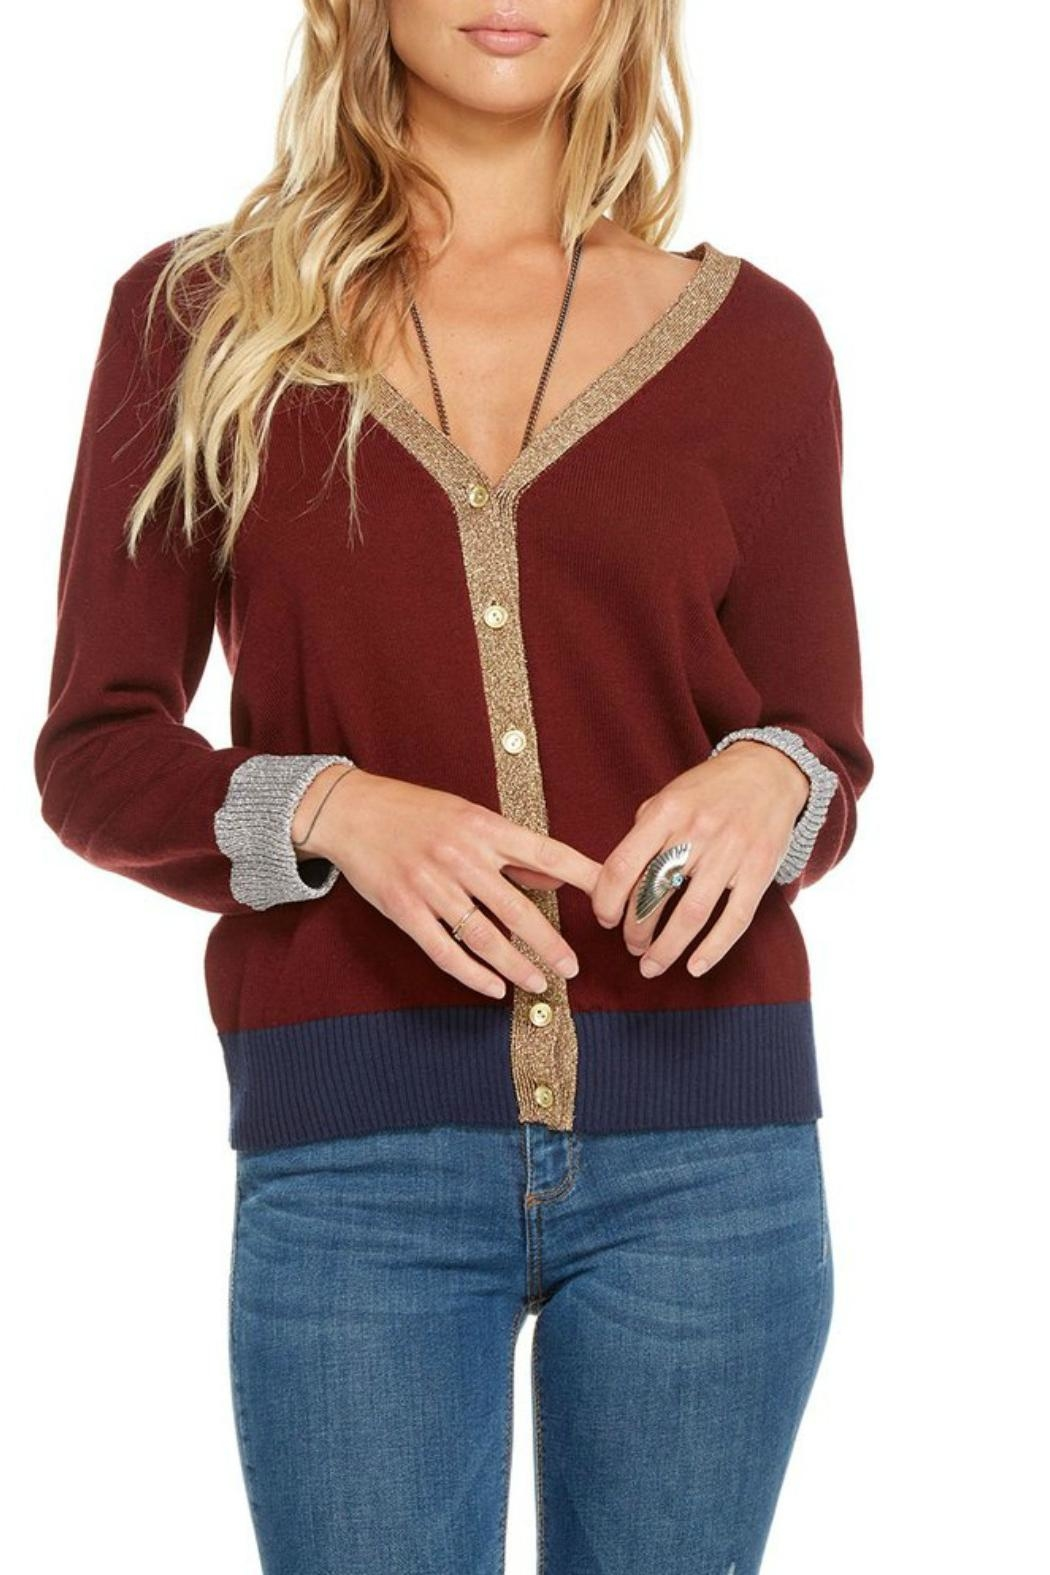 Chaser Cotton Cashmere Cardigan - Main Image